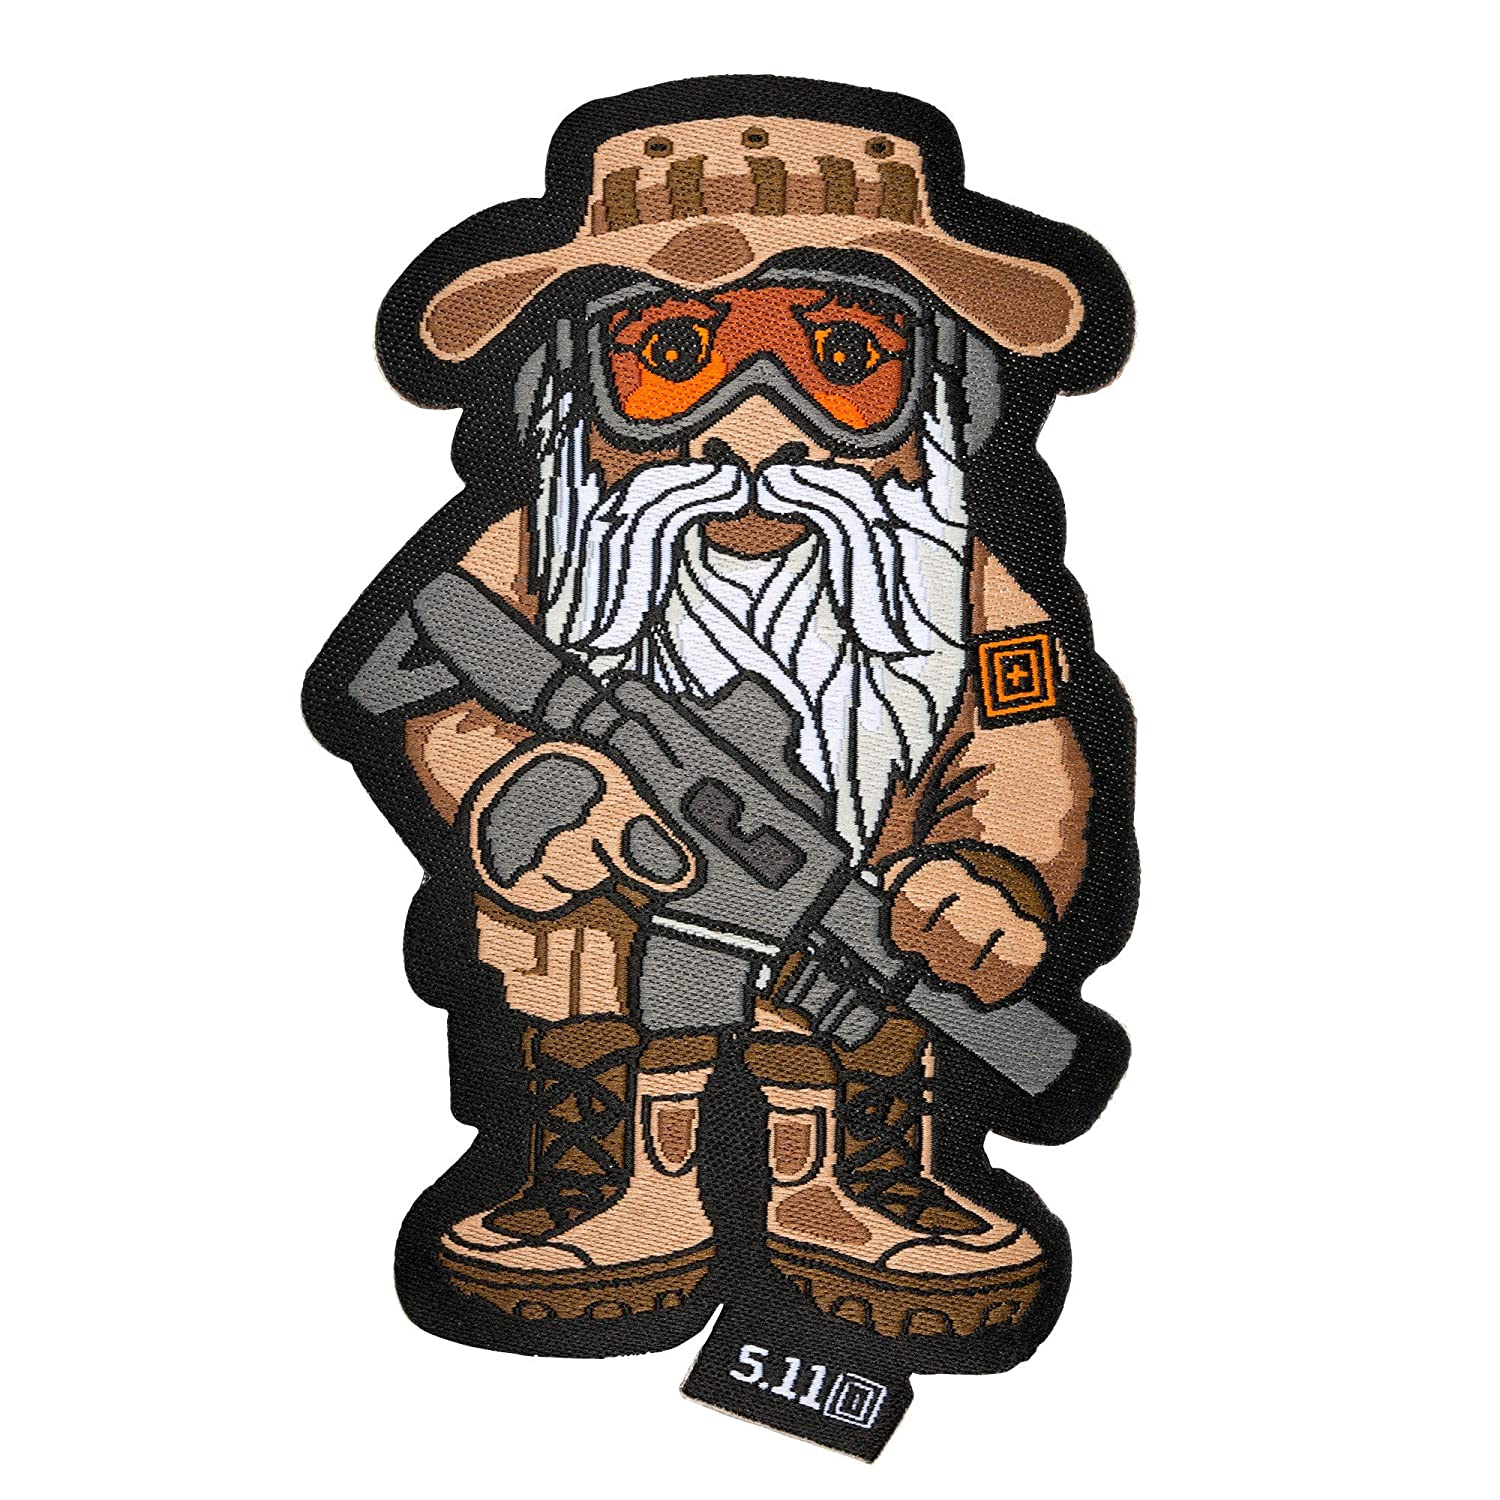 5.11 Tactical Marine Recon Gnome Morale Patch 81068